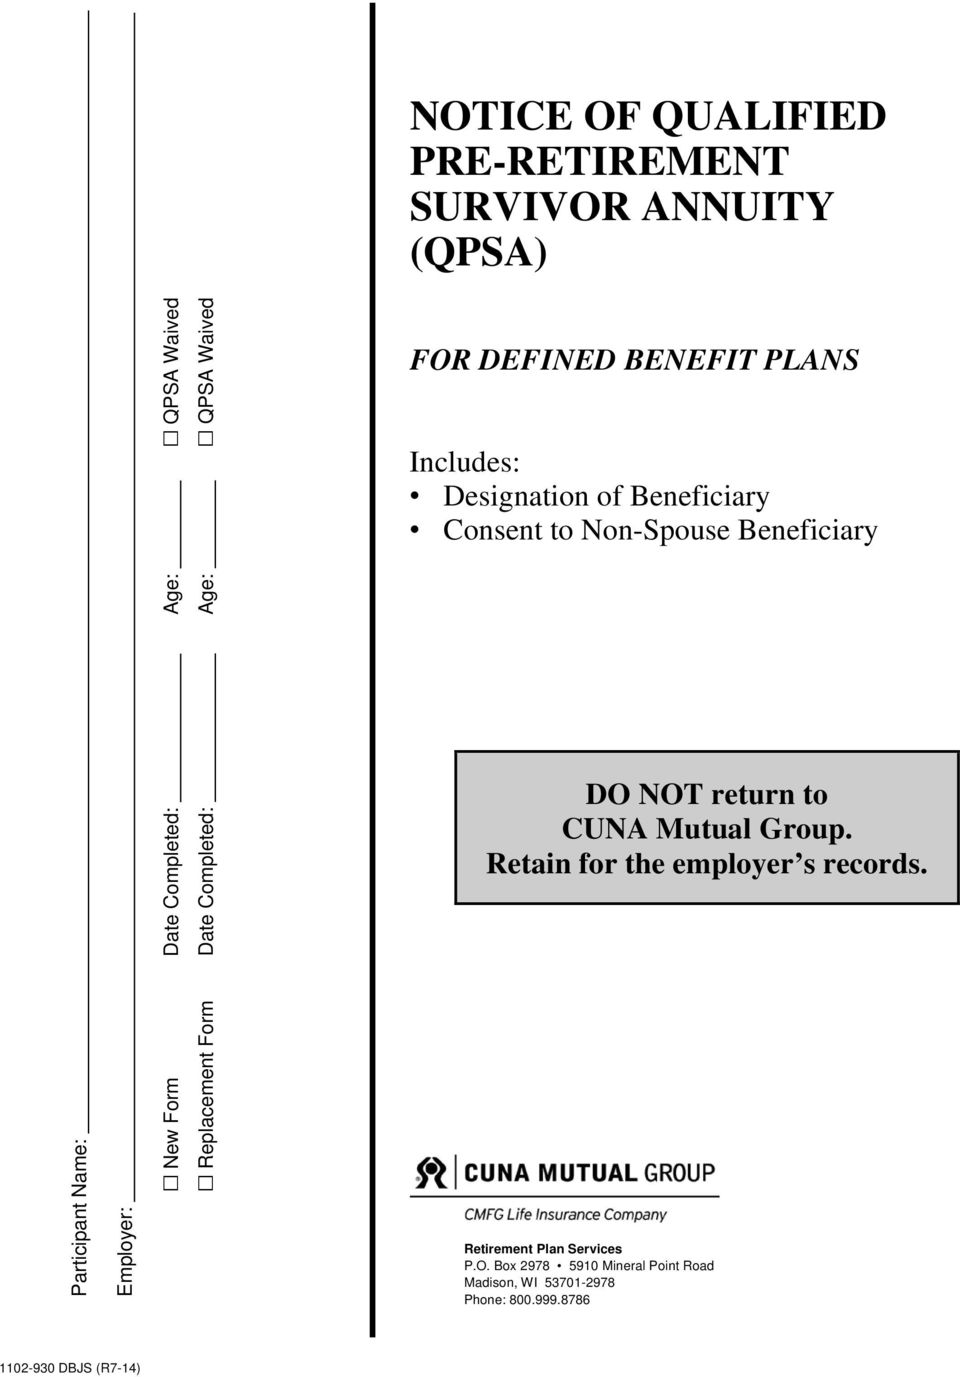 Beneficiary Consent to Non-Spouse Beneficiary DO NOT return to CUNA Mutual Group. Retain for the employer s records.